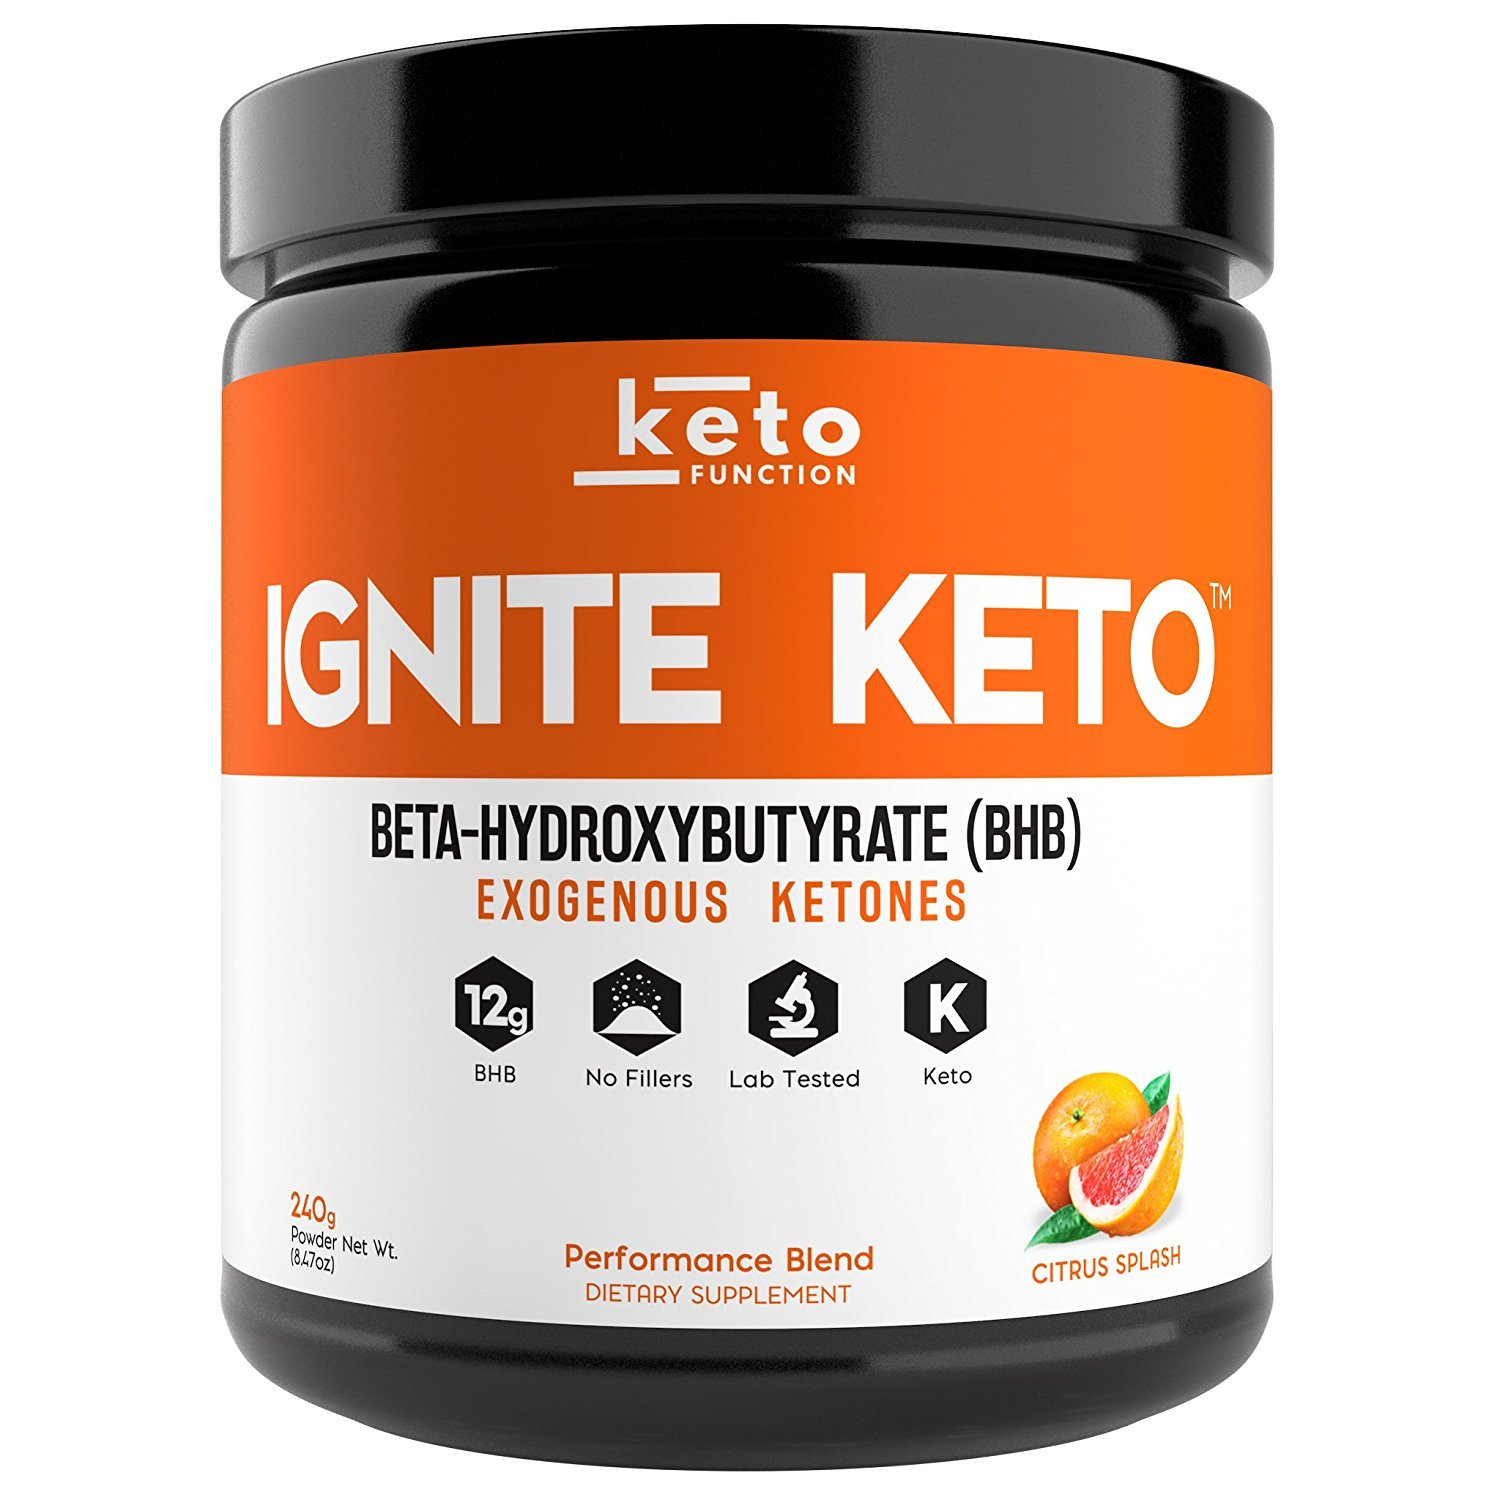 IGNITE KETO Drink - Instant Exogenous Ketones Supplement - 12g Pure BHB Salts - Fuel Ketosis, Energy, and Focus - Best goBHB Ketone Drink Powder Mix - Perfect for Low Carb Keto Diet by Keto Function